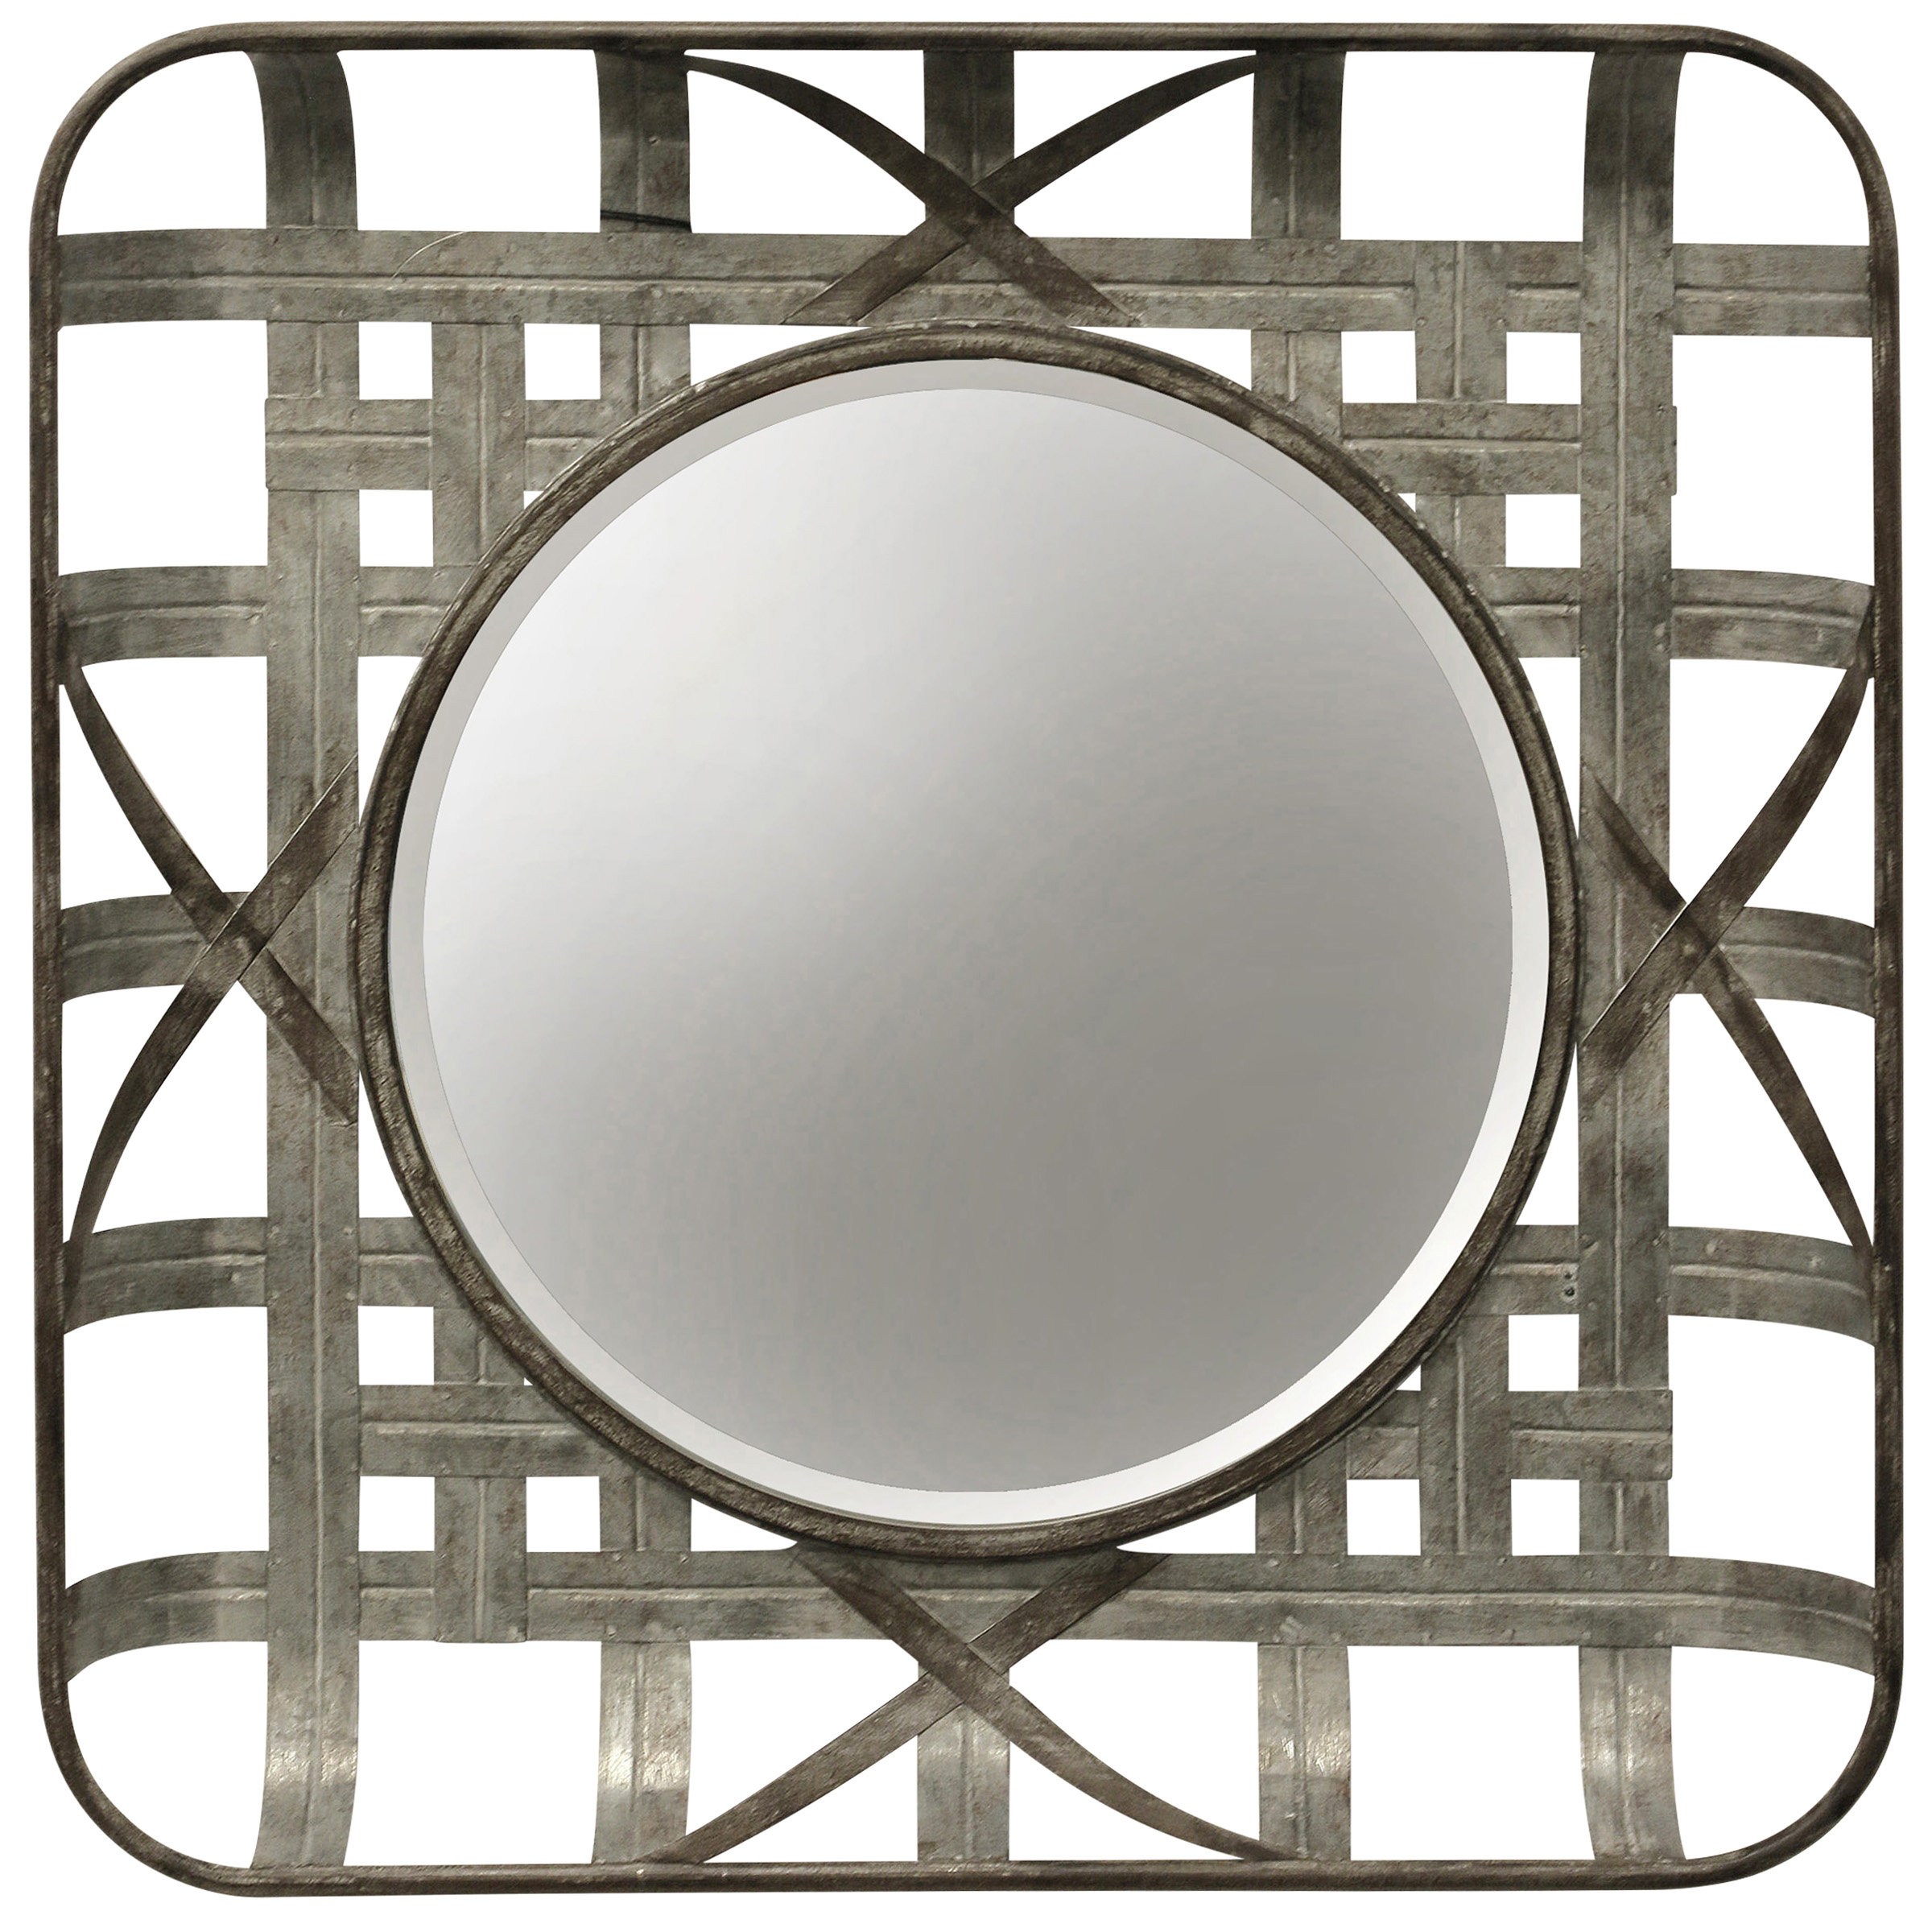 Grid Mirror | Wayfair In Grid Accent Mirrors (Image 8 of 20)